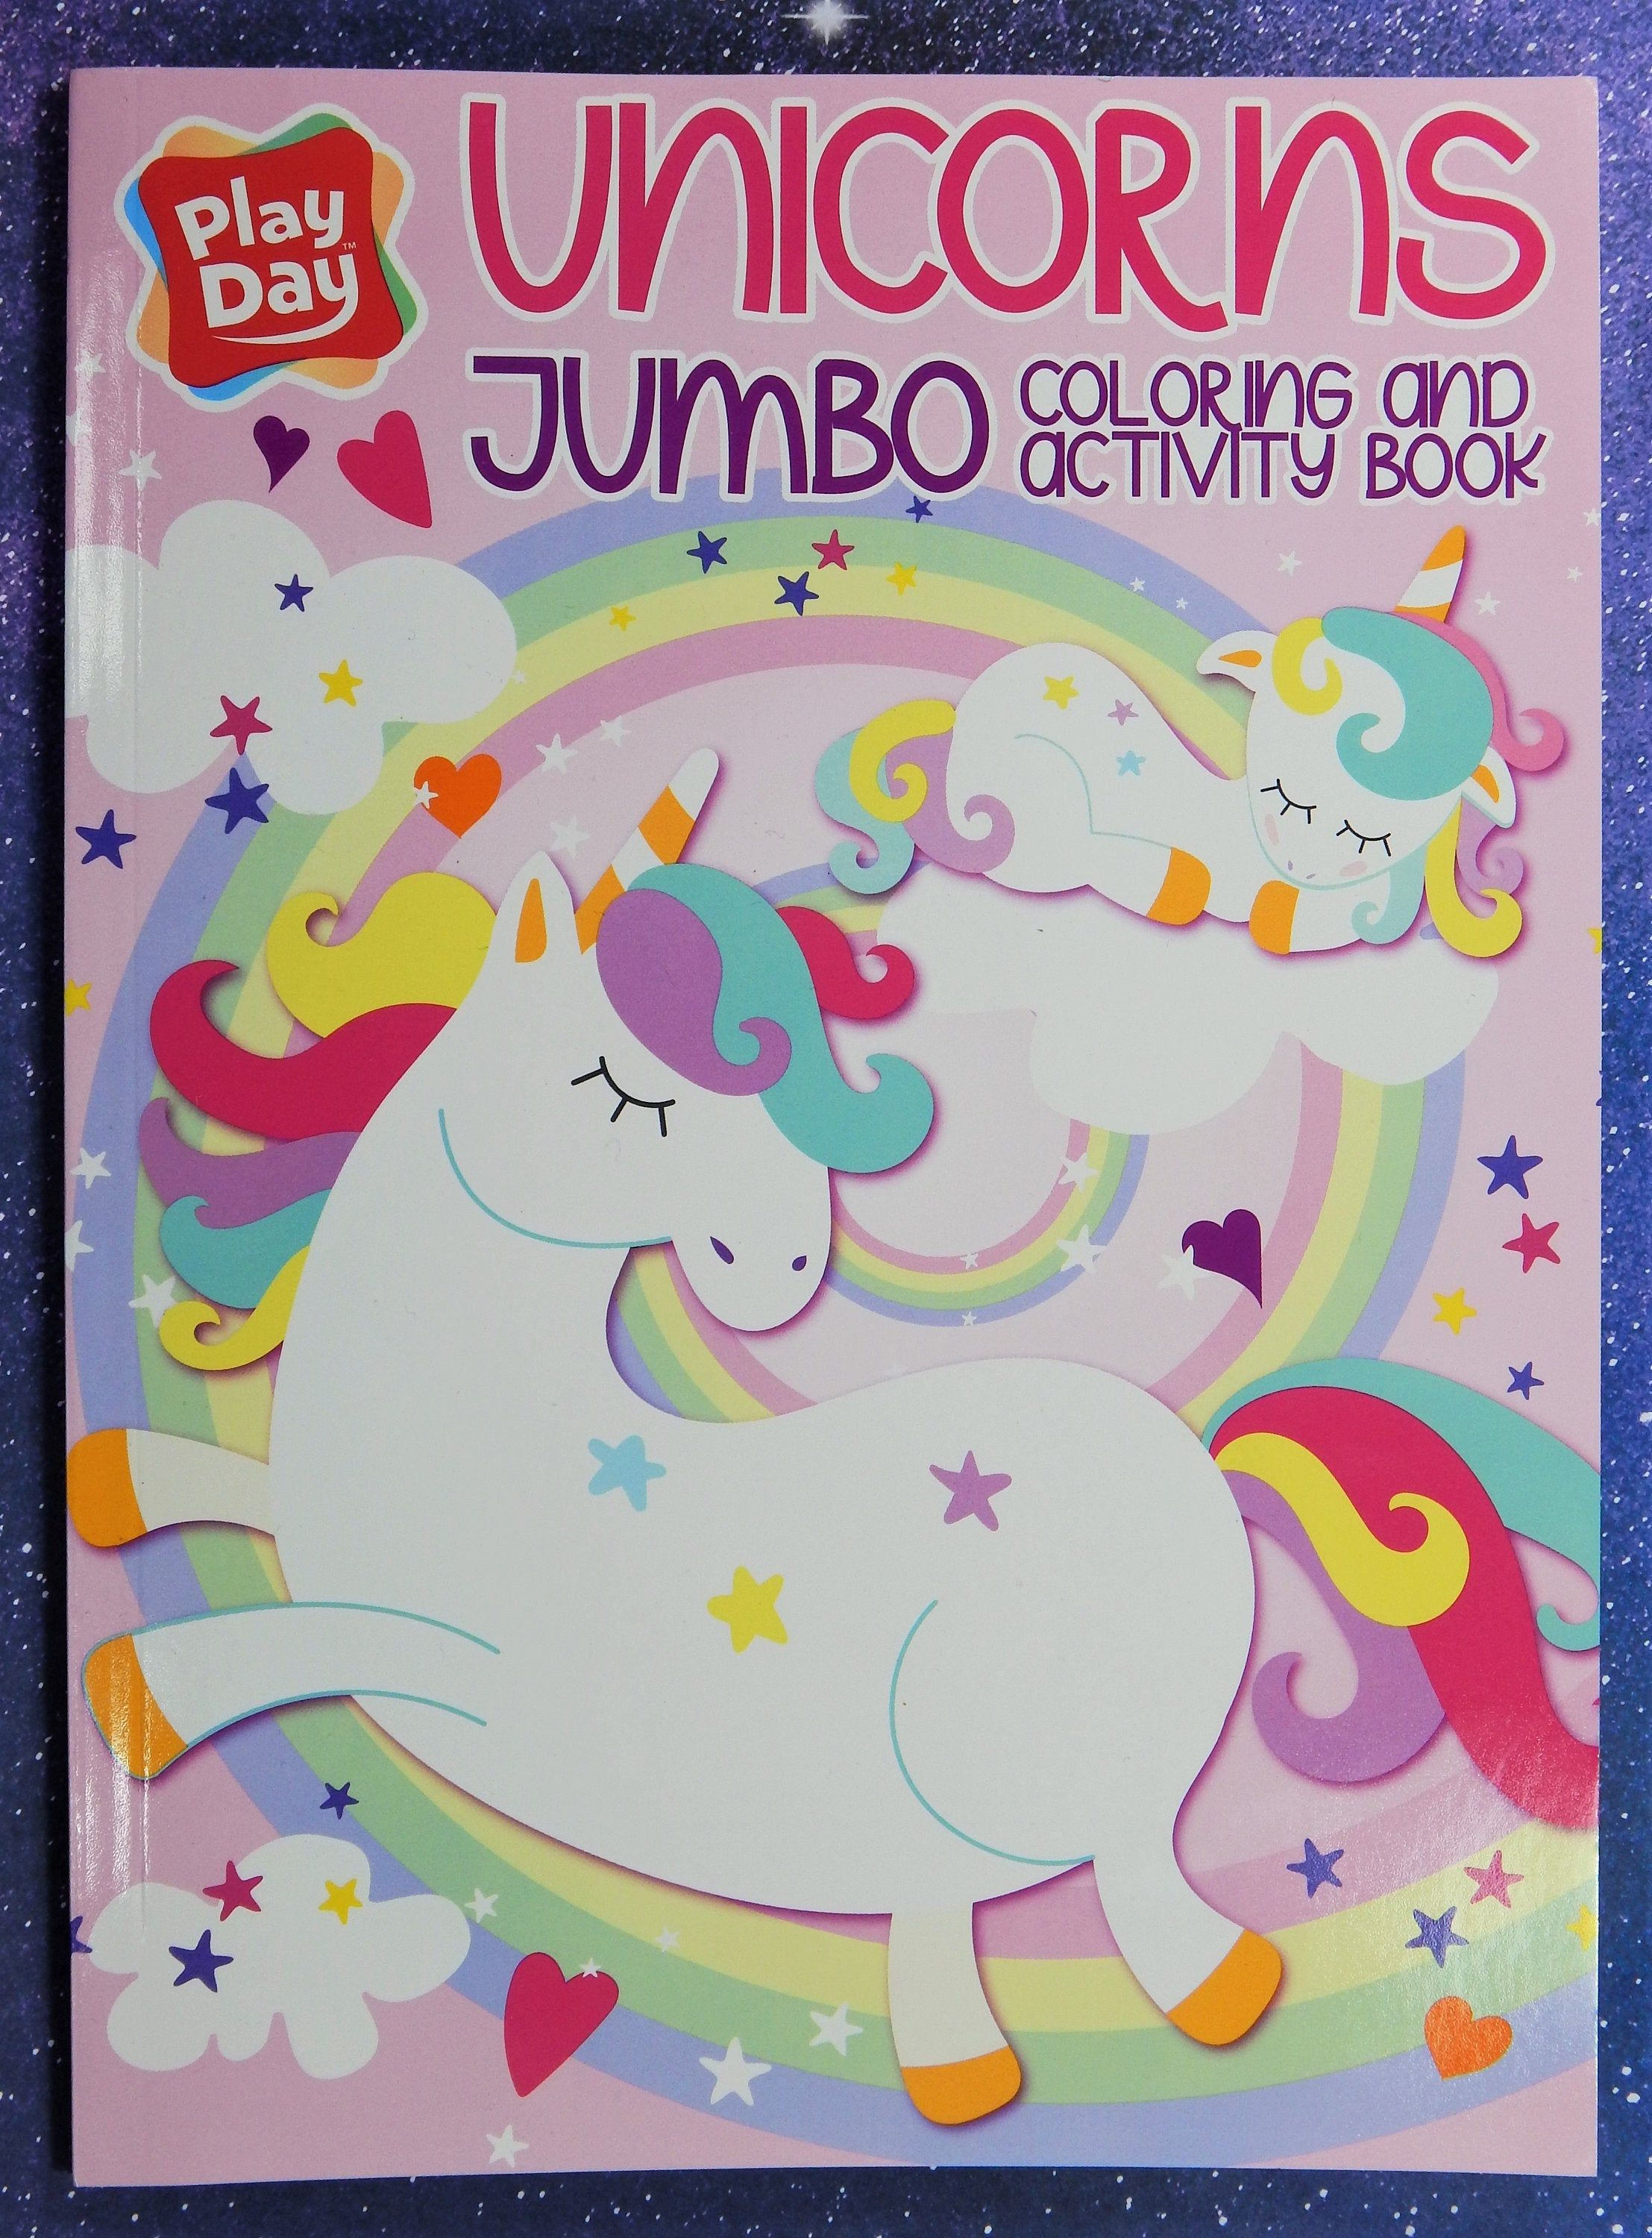 Play Day Unicorns Jumbo Coloring Activity Book Book Activities Play Day Color Activities